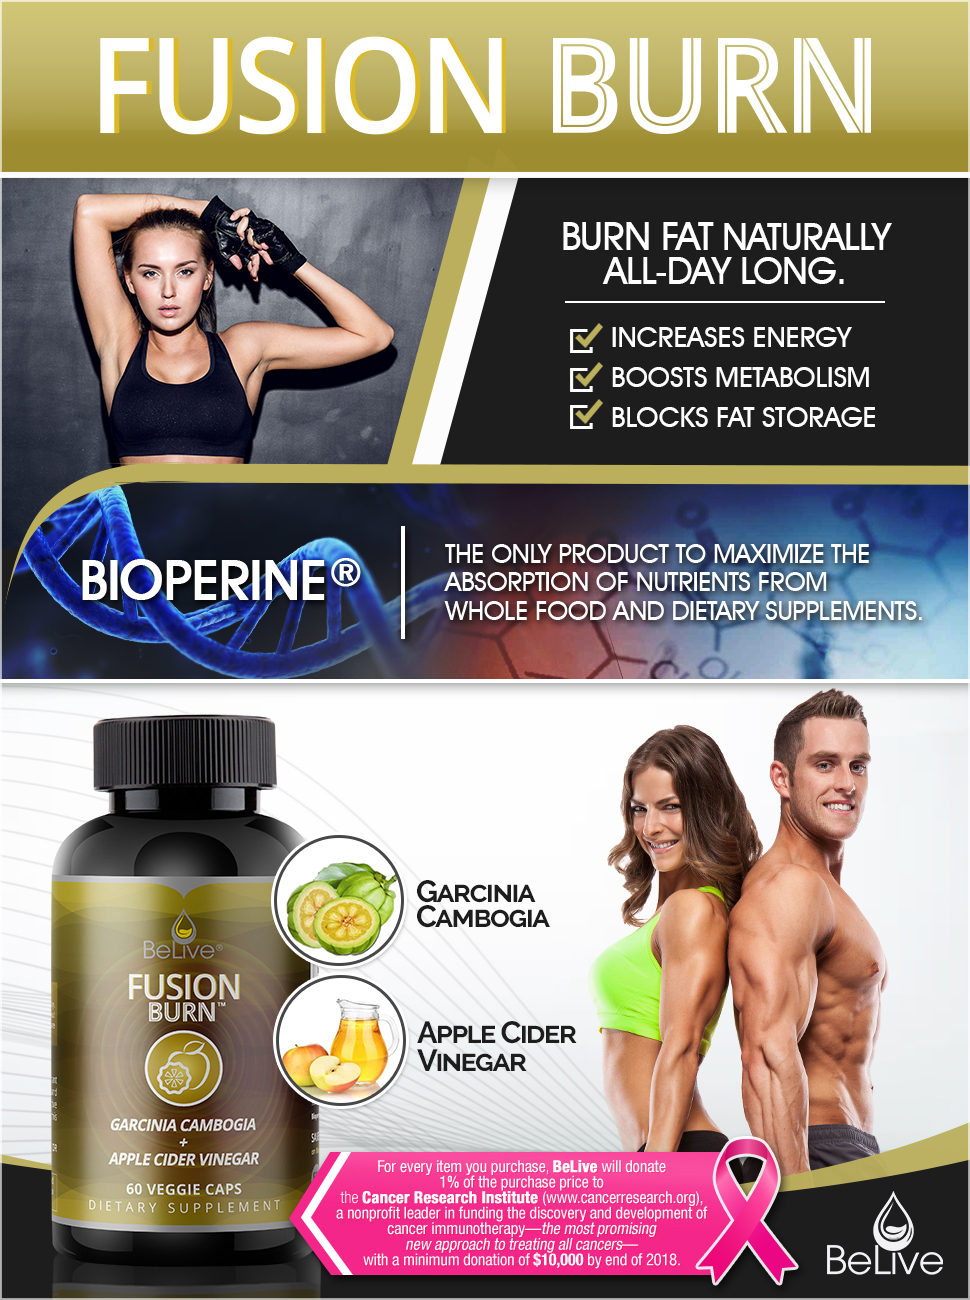 Best laxative for immediate weight loss picture 4